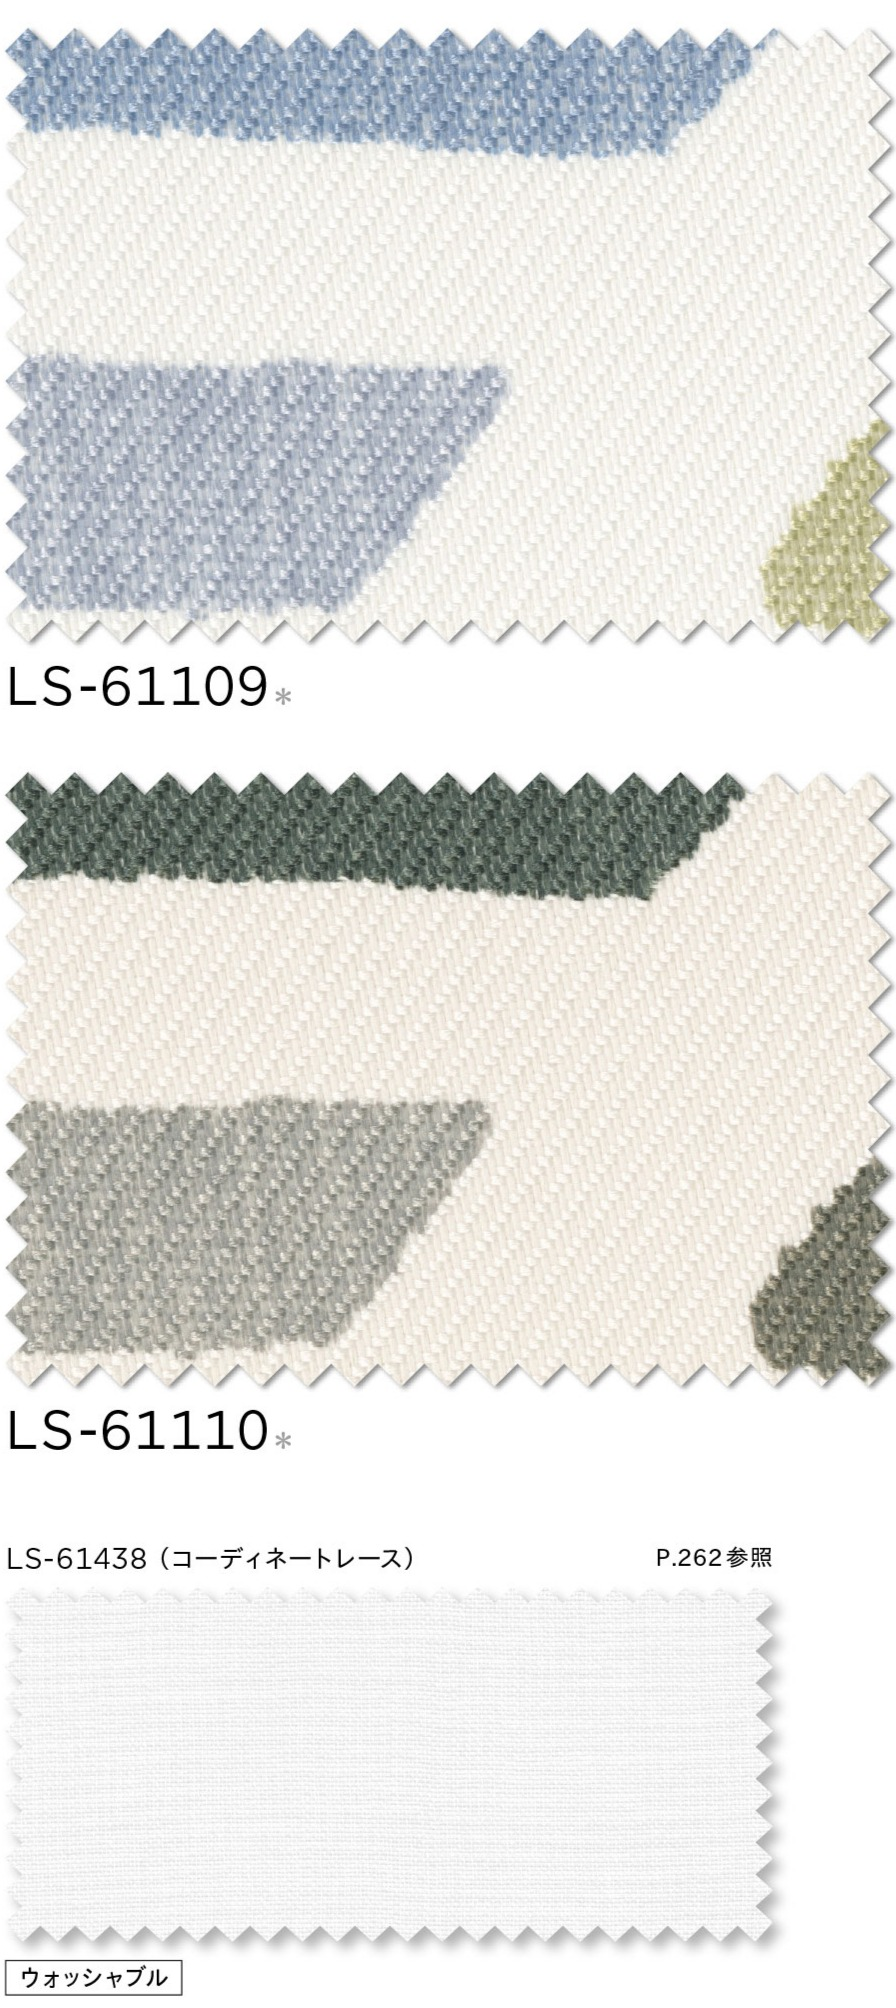 LS61109 - LS61110, 2 Colors Available, Lilycolor Curtain, Curtain Fabric, Free Samples